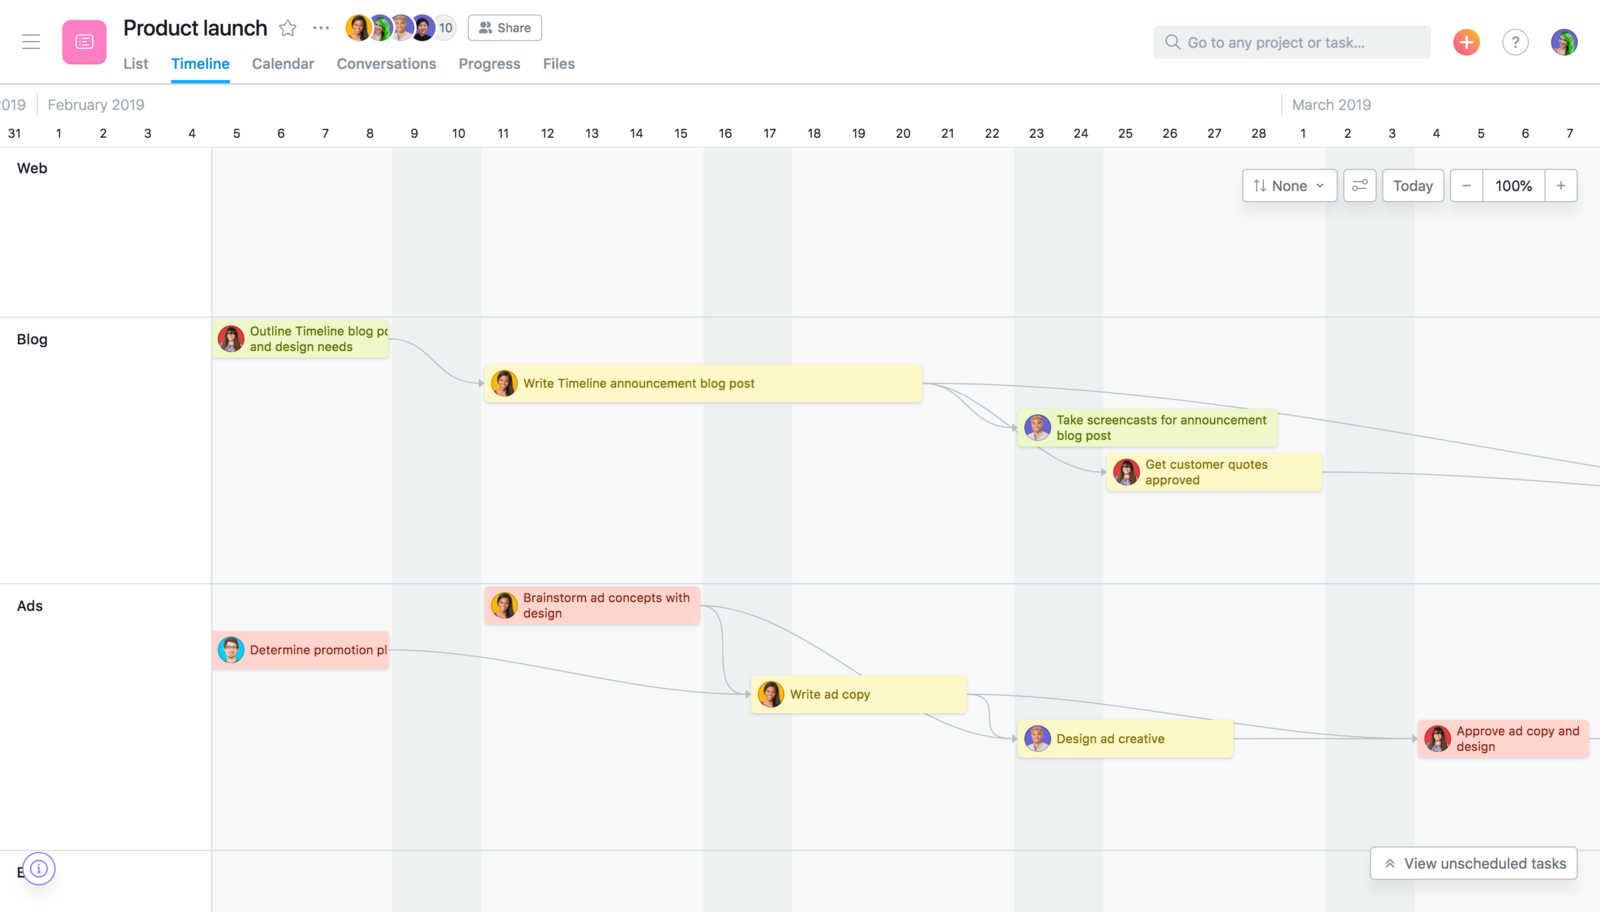 Example project plan with Asana Timeline, a Gantt chart style view